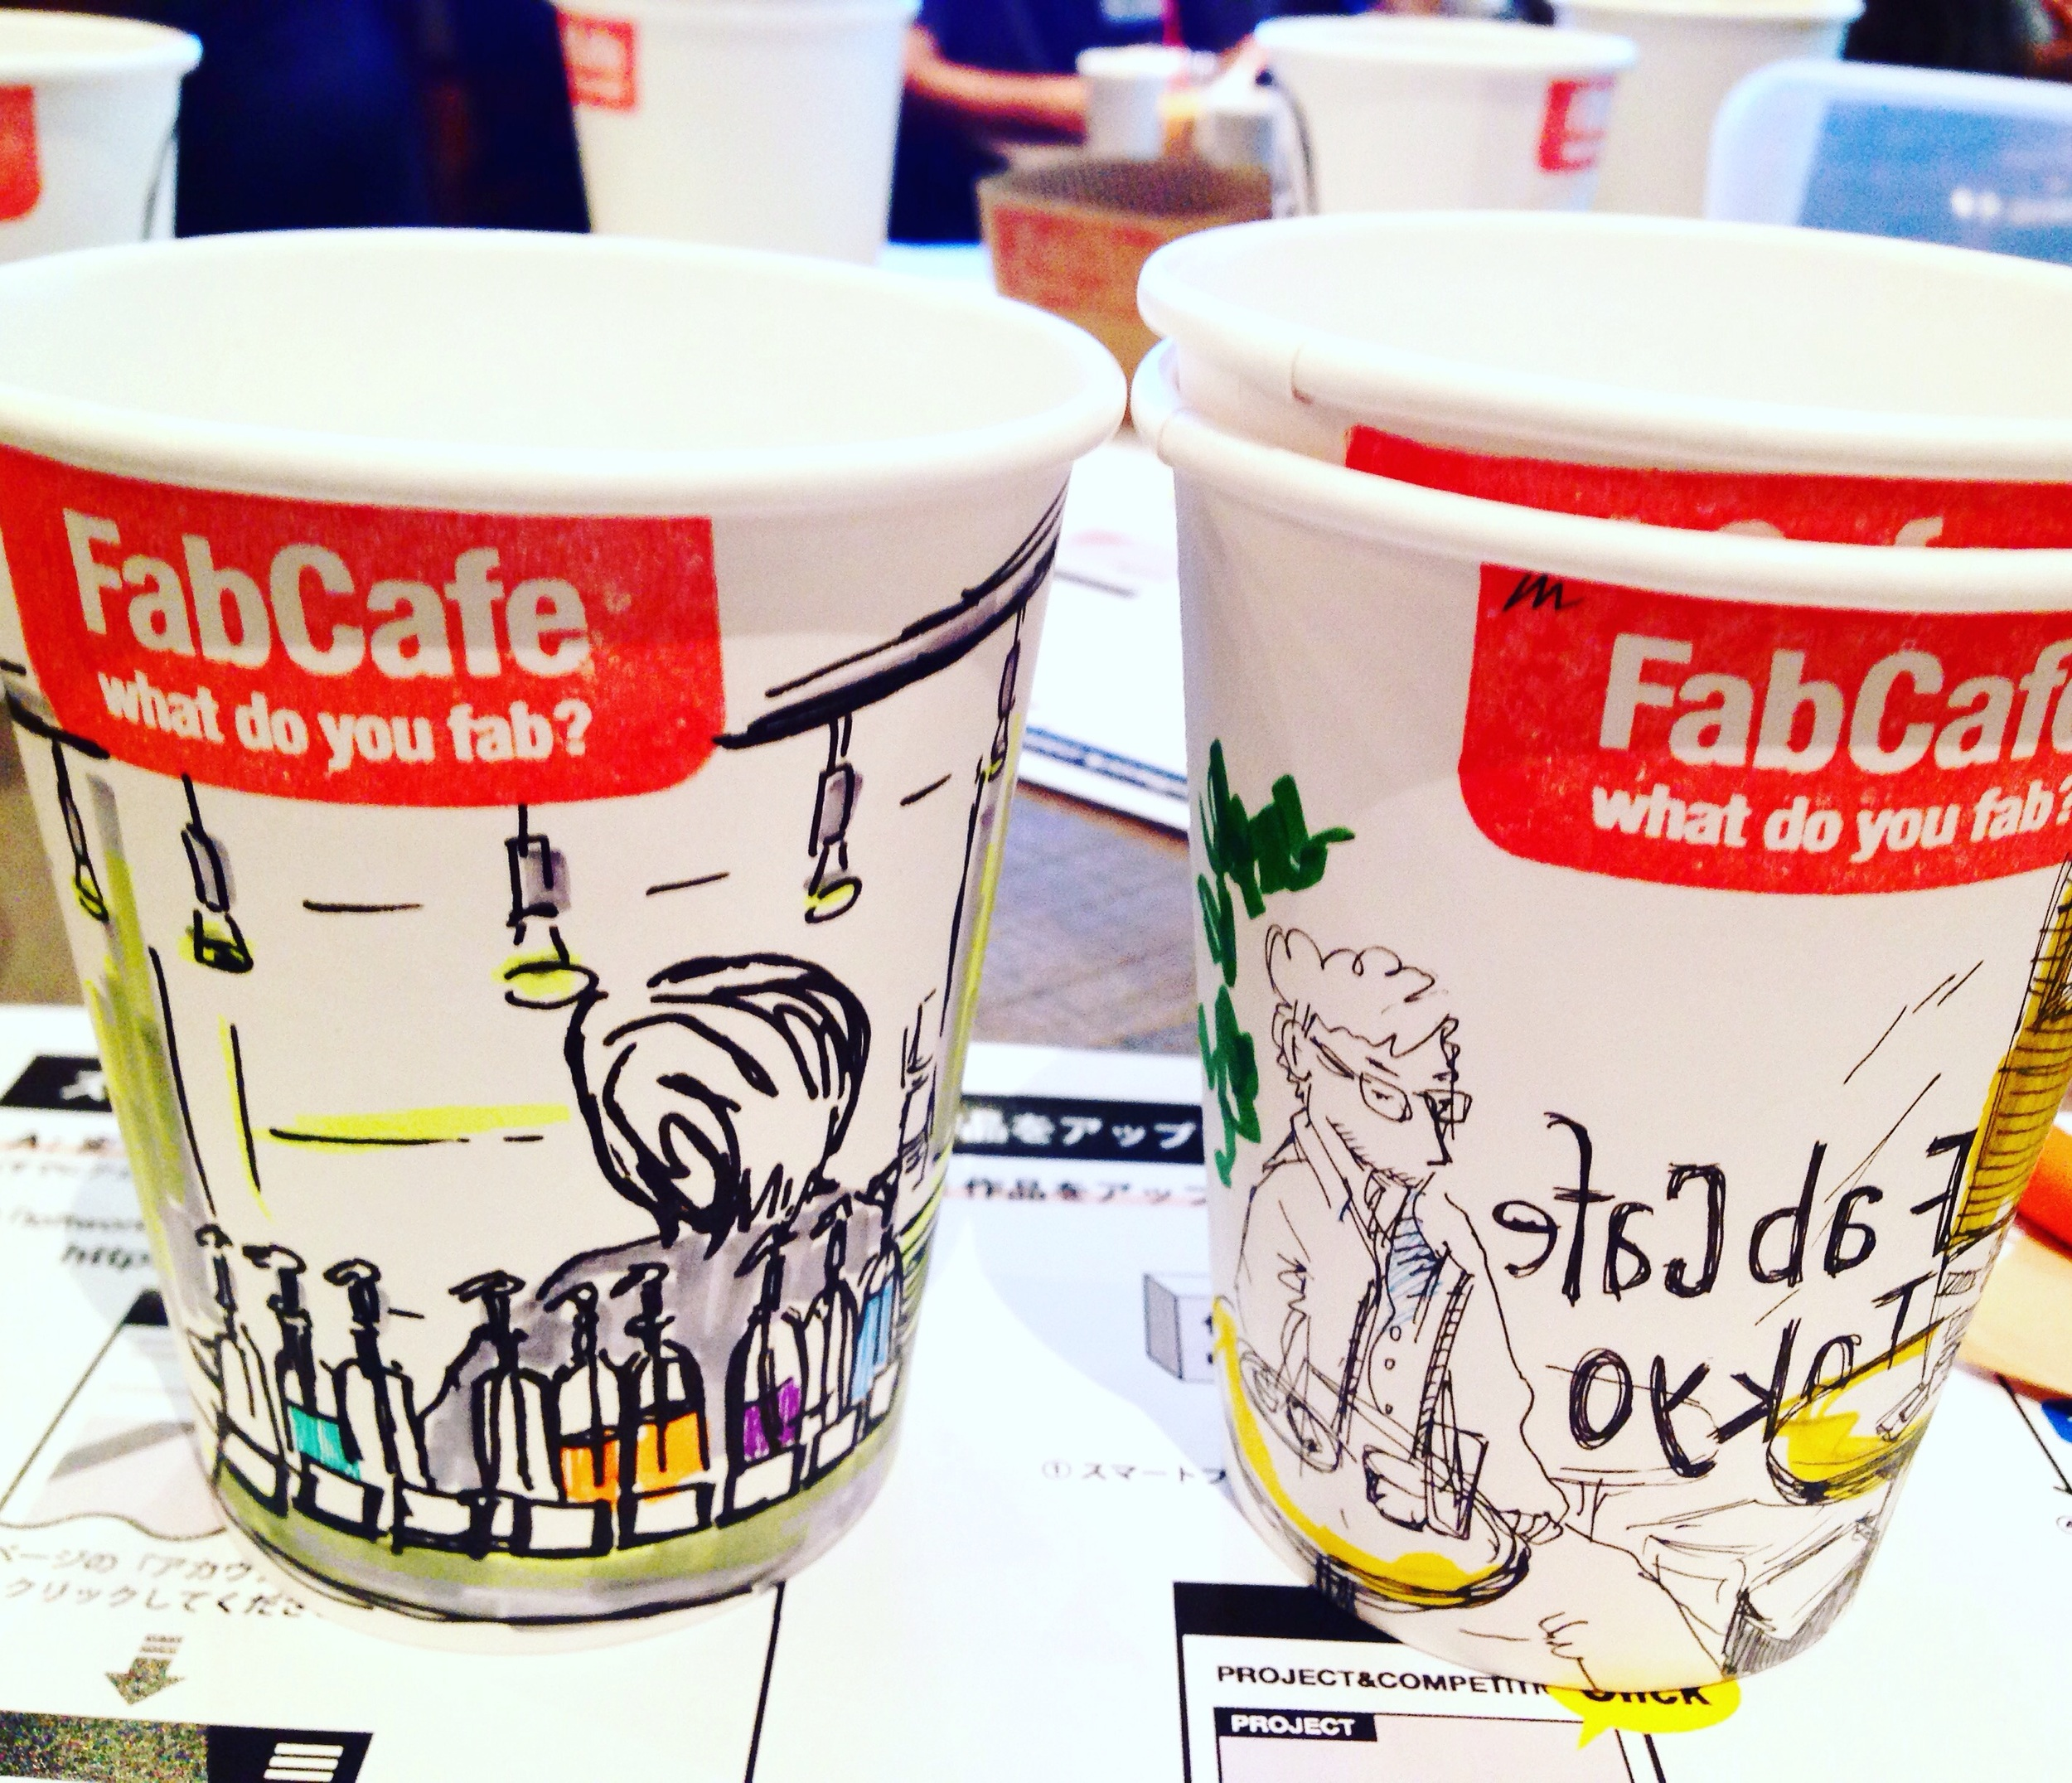 And so I did 2 of the interiors of FabCafe.